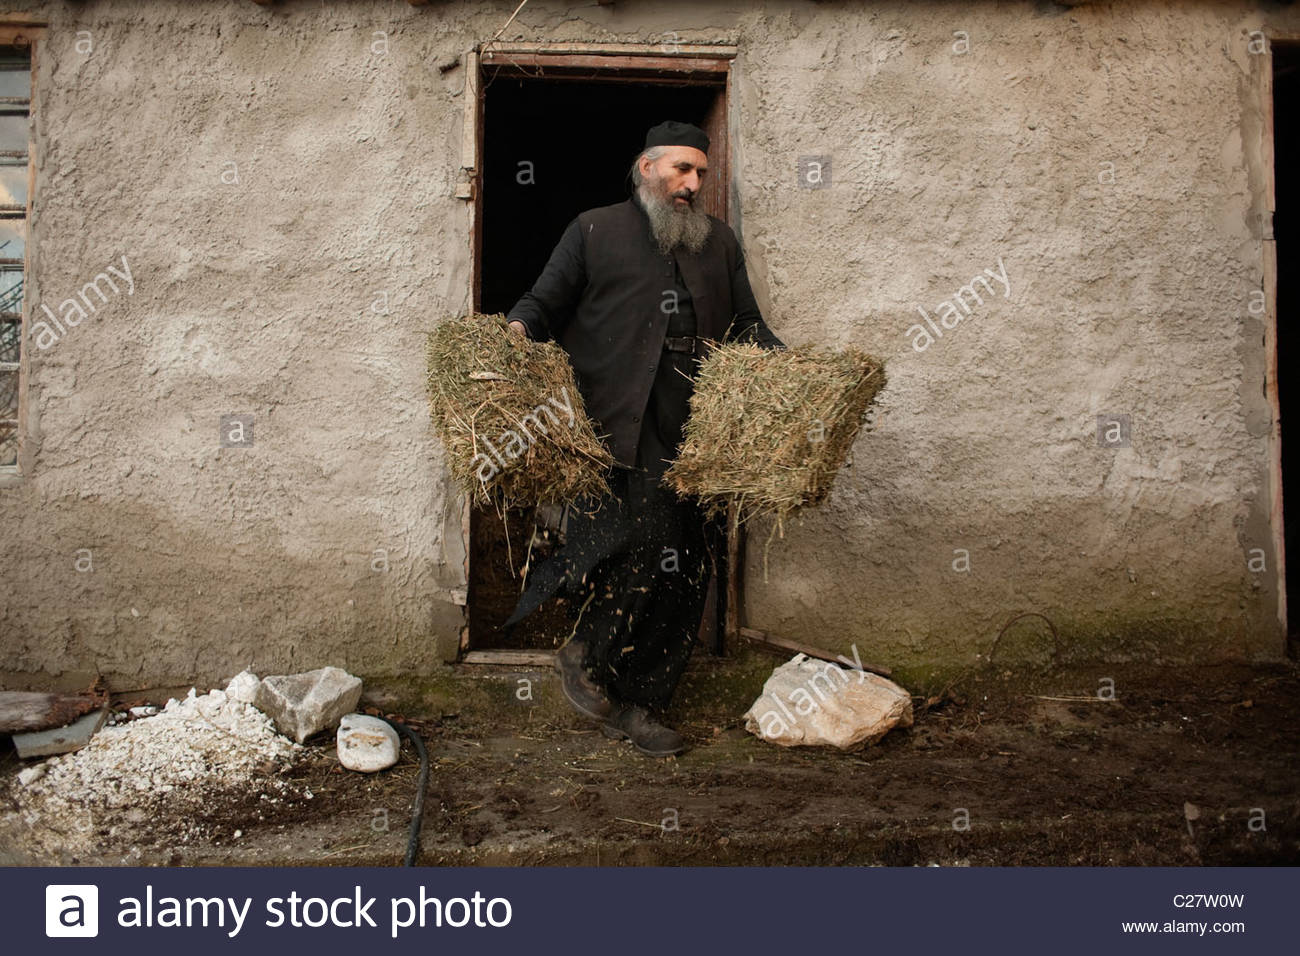 Father Daniel grabs hay for his mules in the skete of Saint Anne. - Stock Image